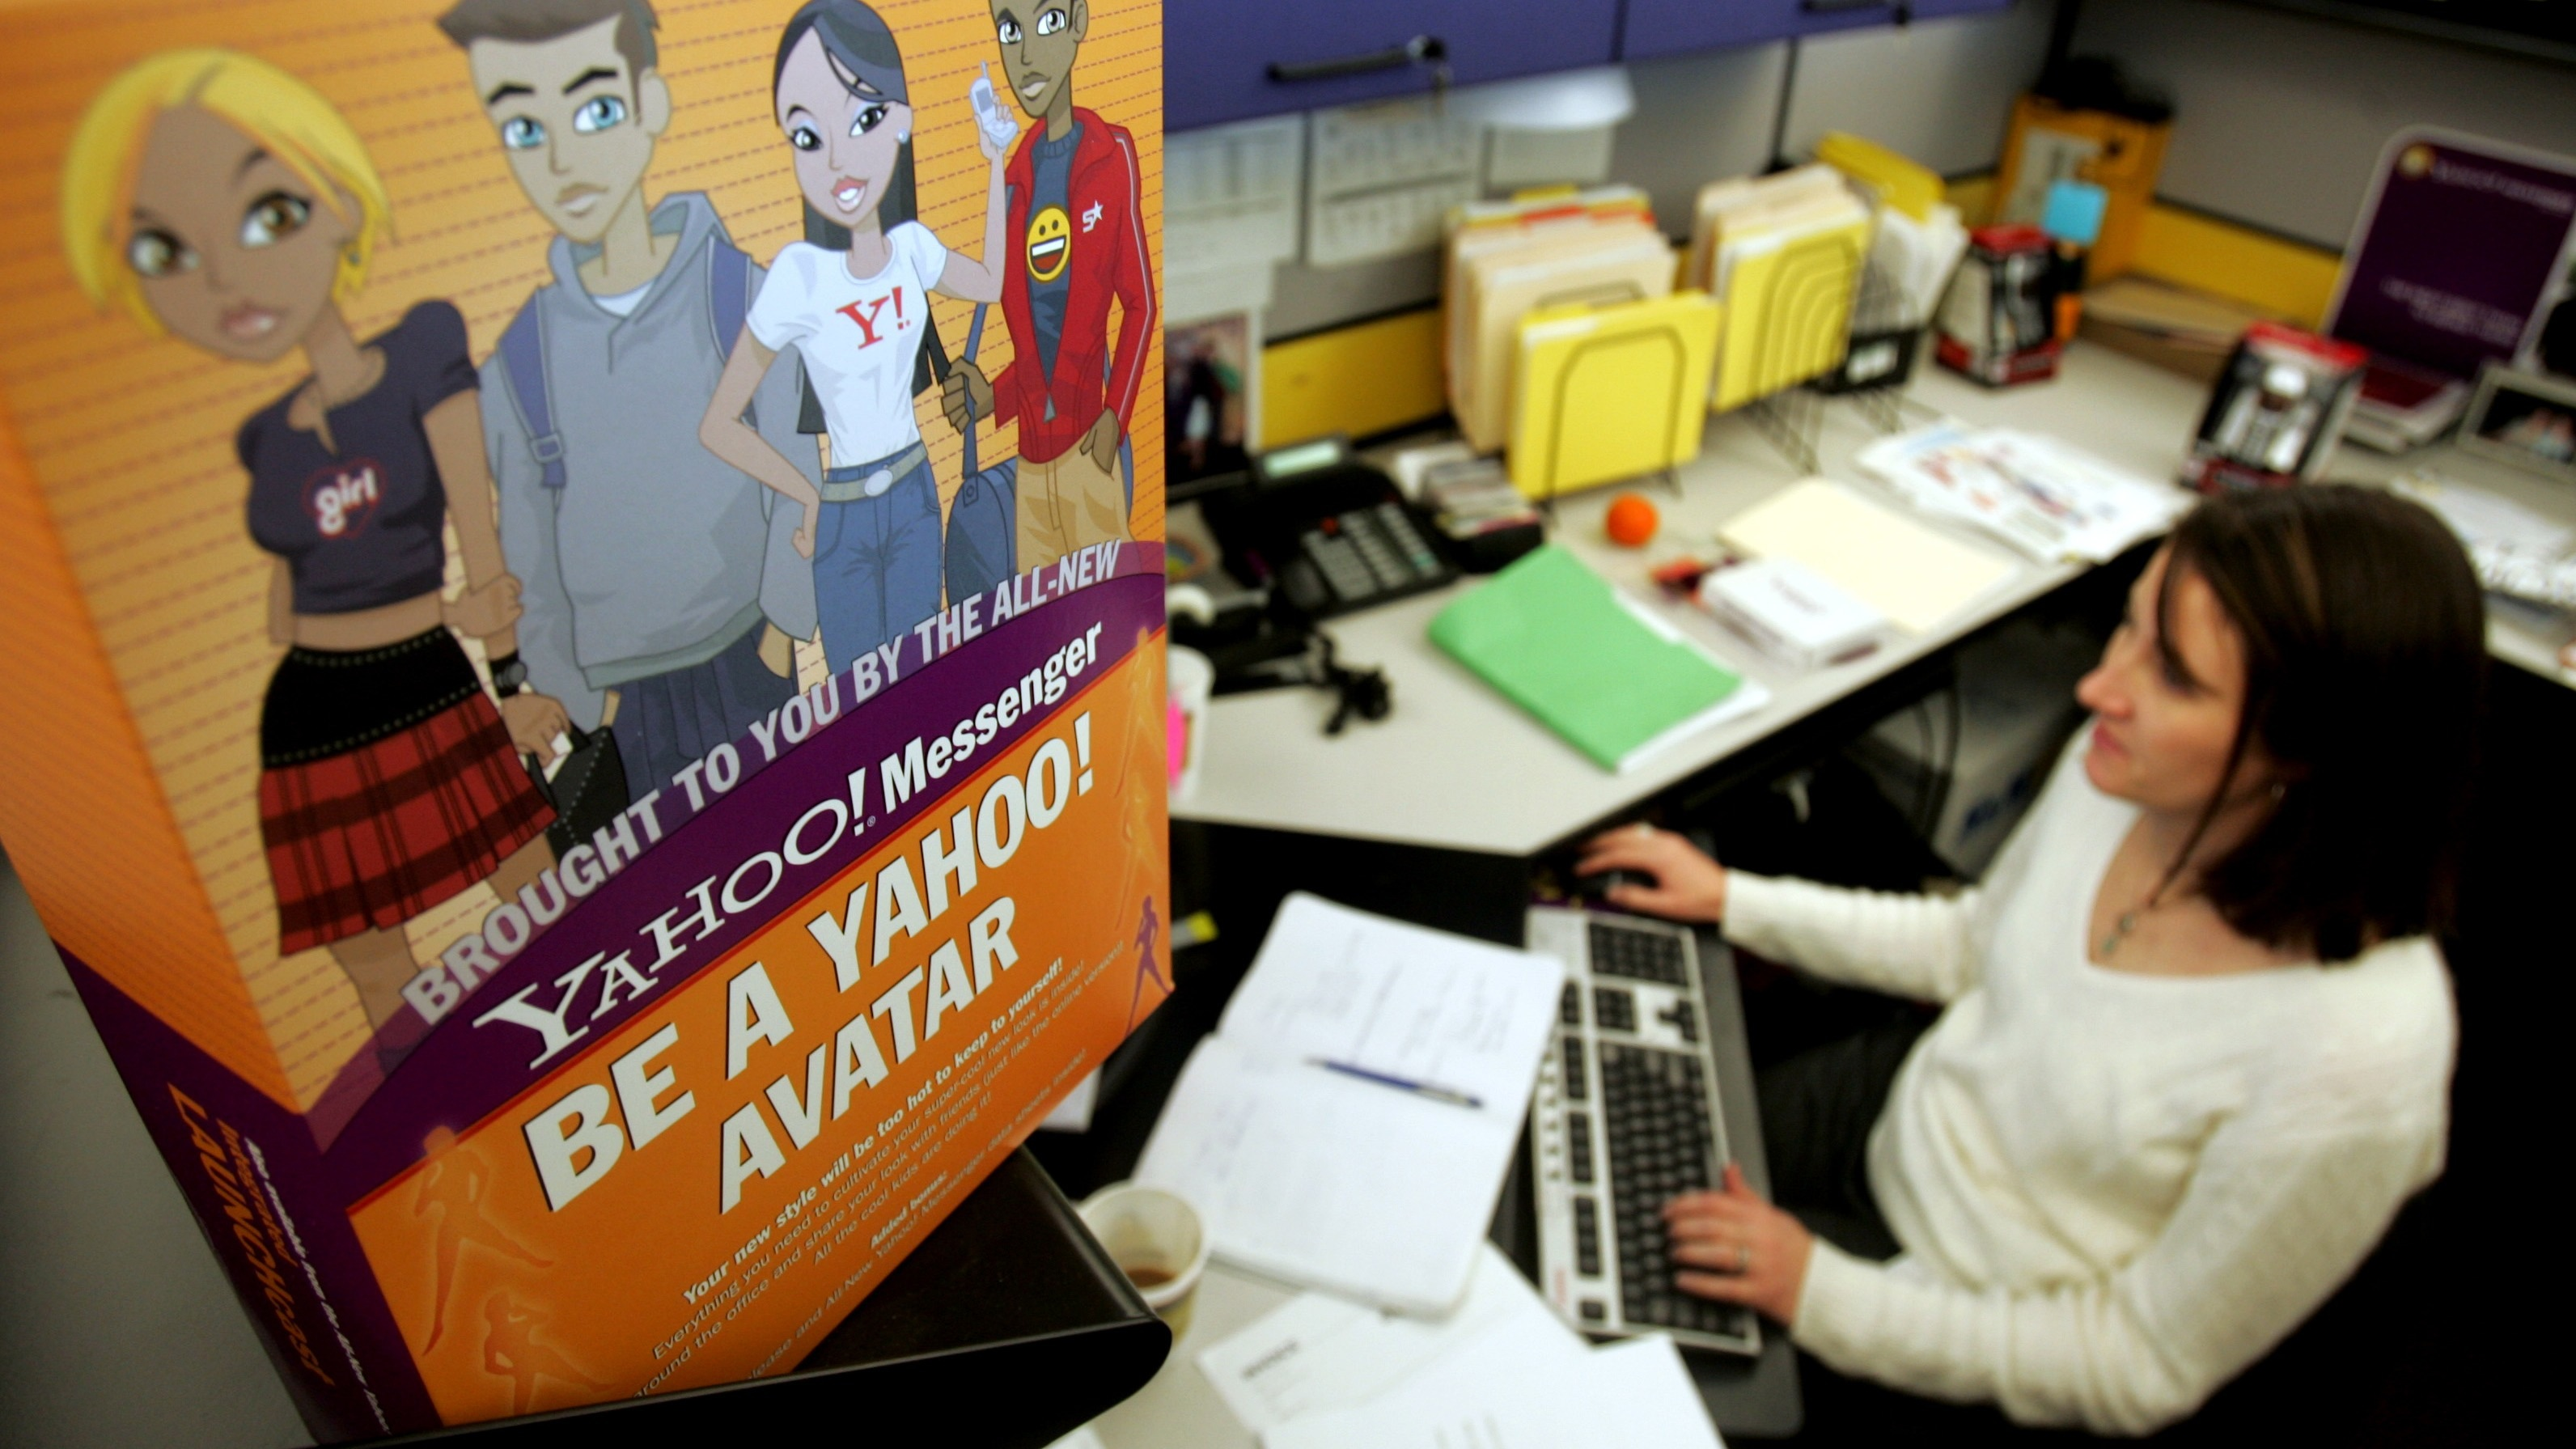 Yahoo! Inc. employee Terrell Karlsten works at her desk as she works on the Yahoo! Messenger service at company headquarters in Sunnyvale, Calif., Tuesday, Jan. 17, 2006. (AP Photo/Paul Sakuma)